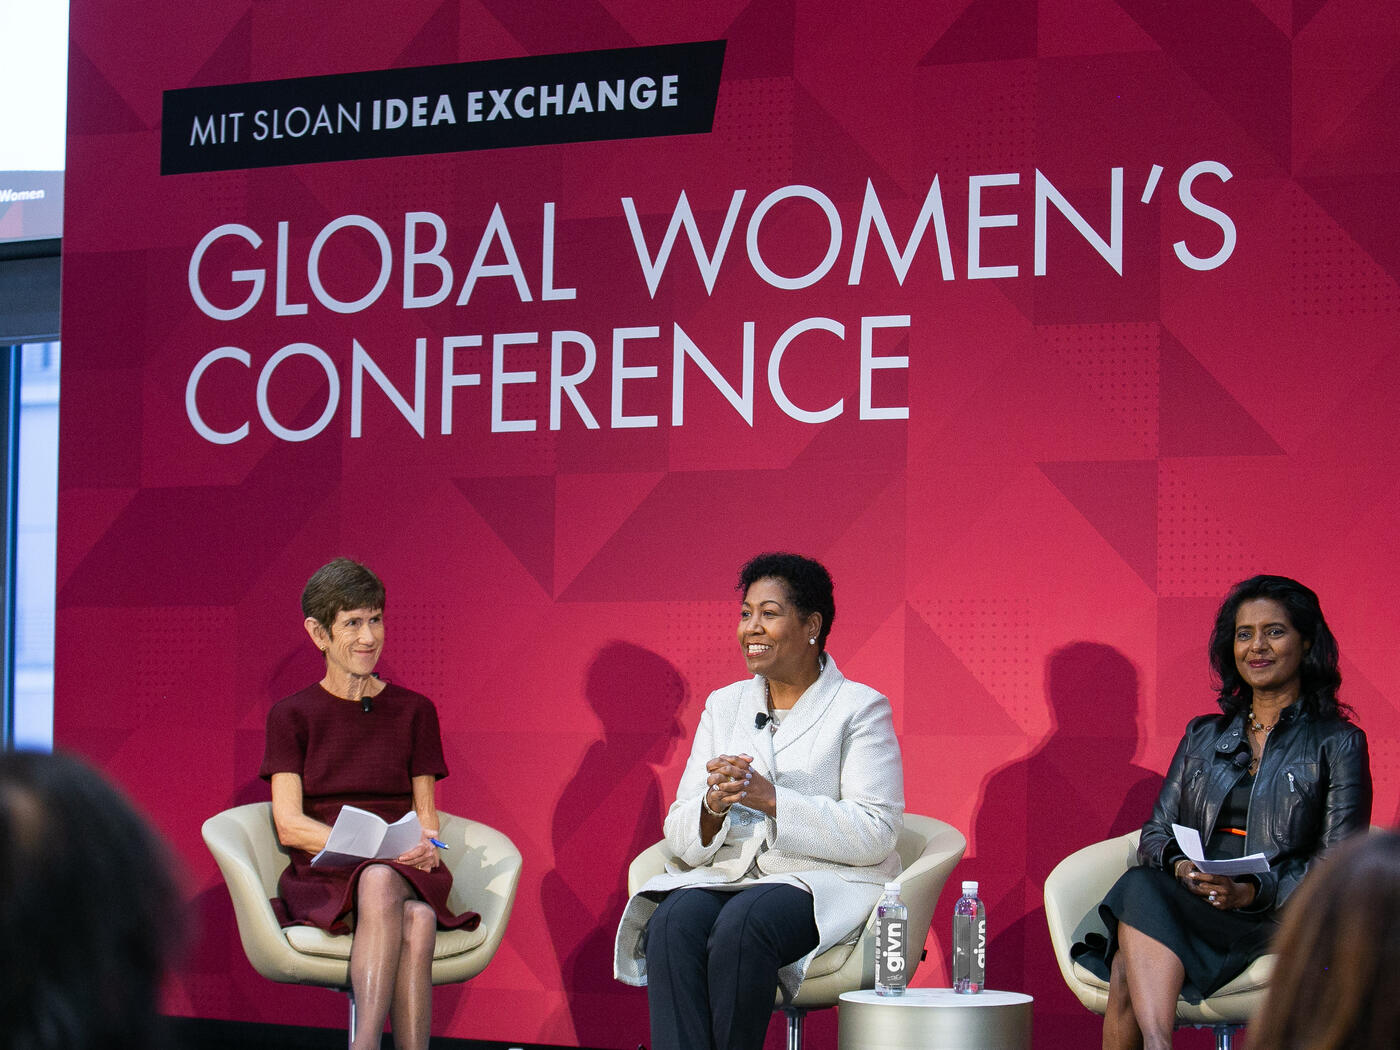 MIT Sloan Global Women's Conference Photos 2019